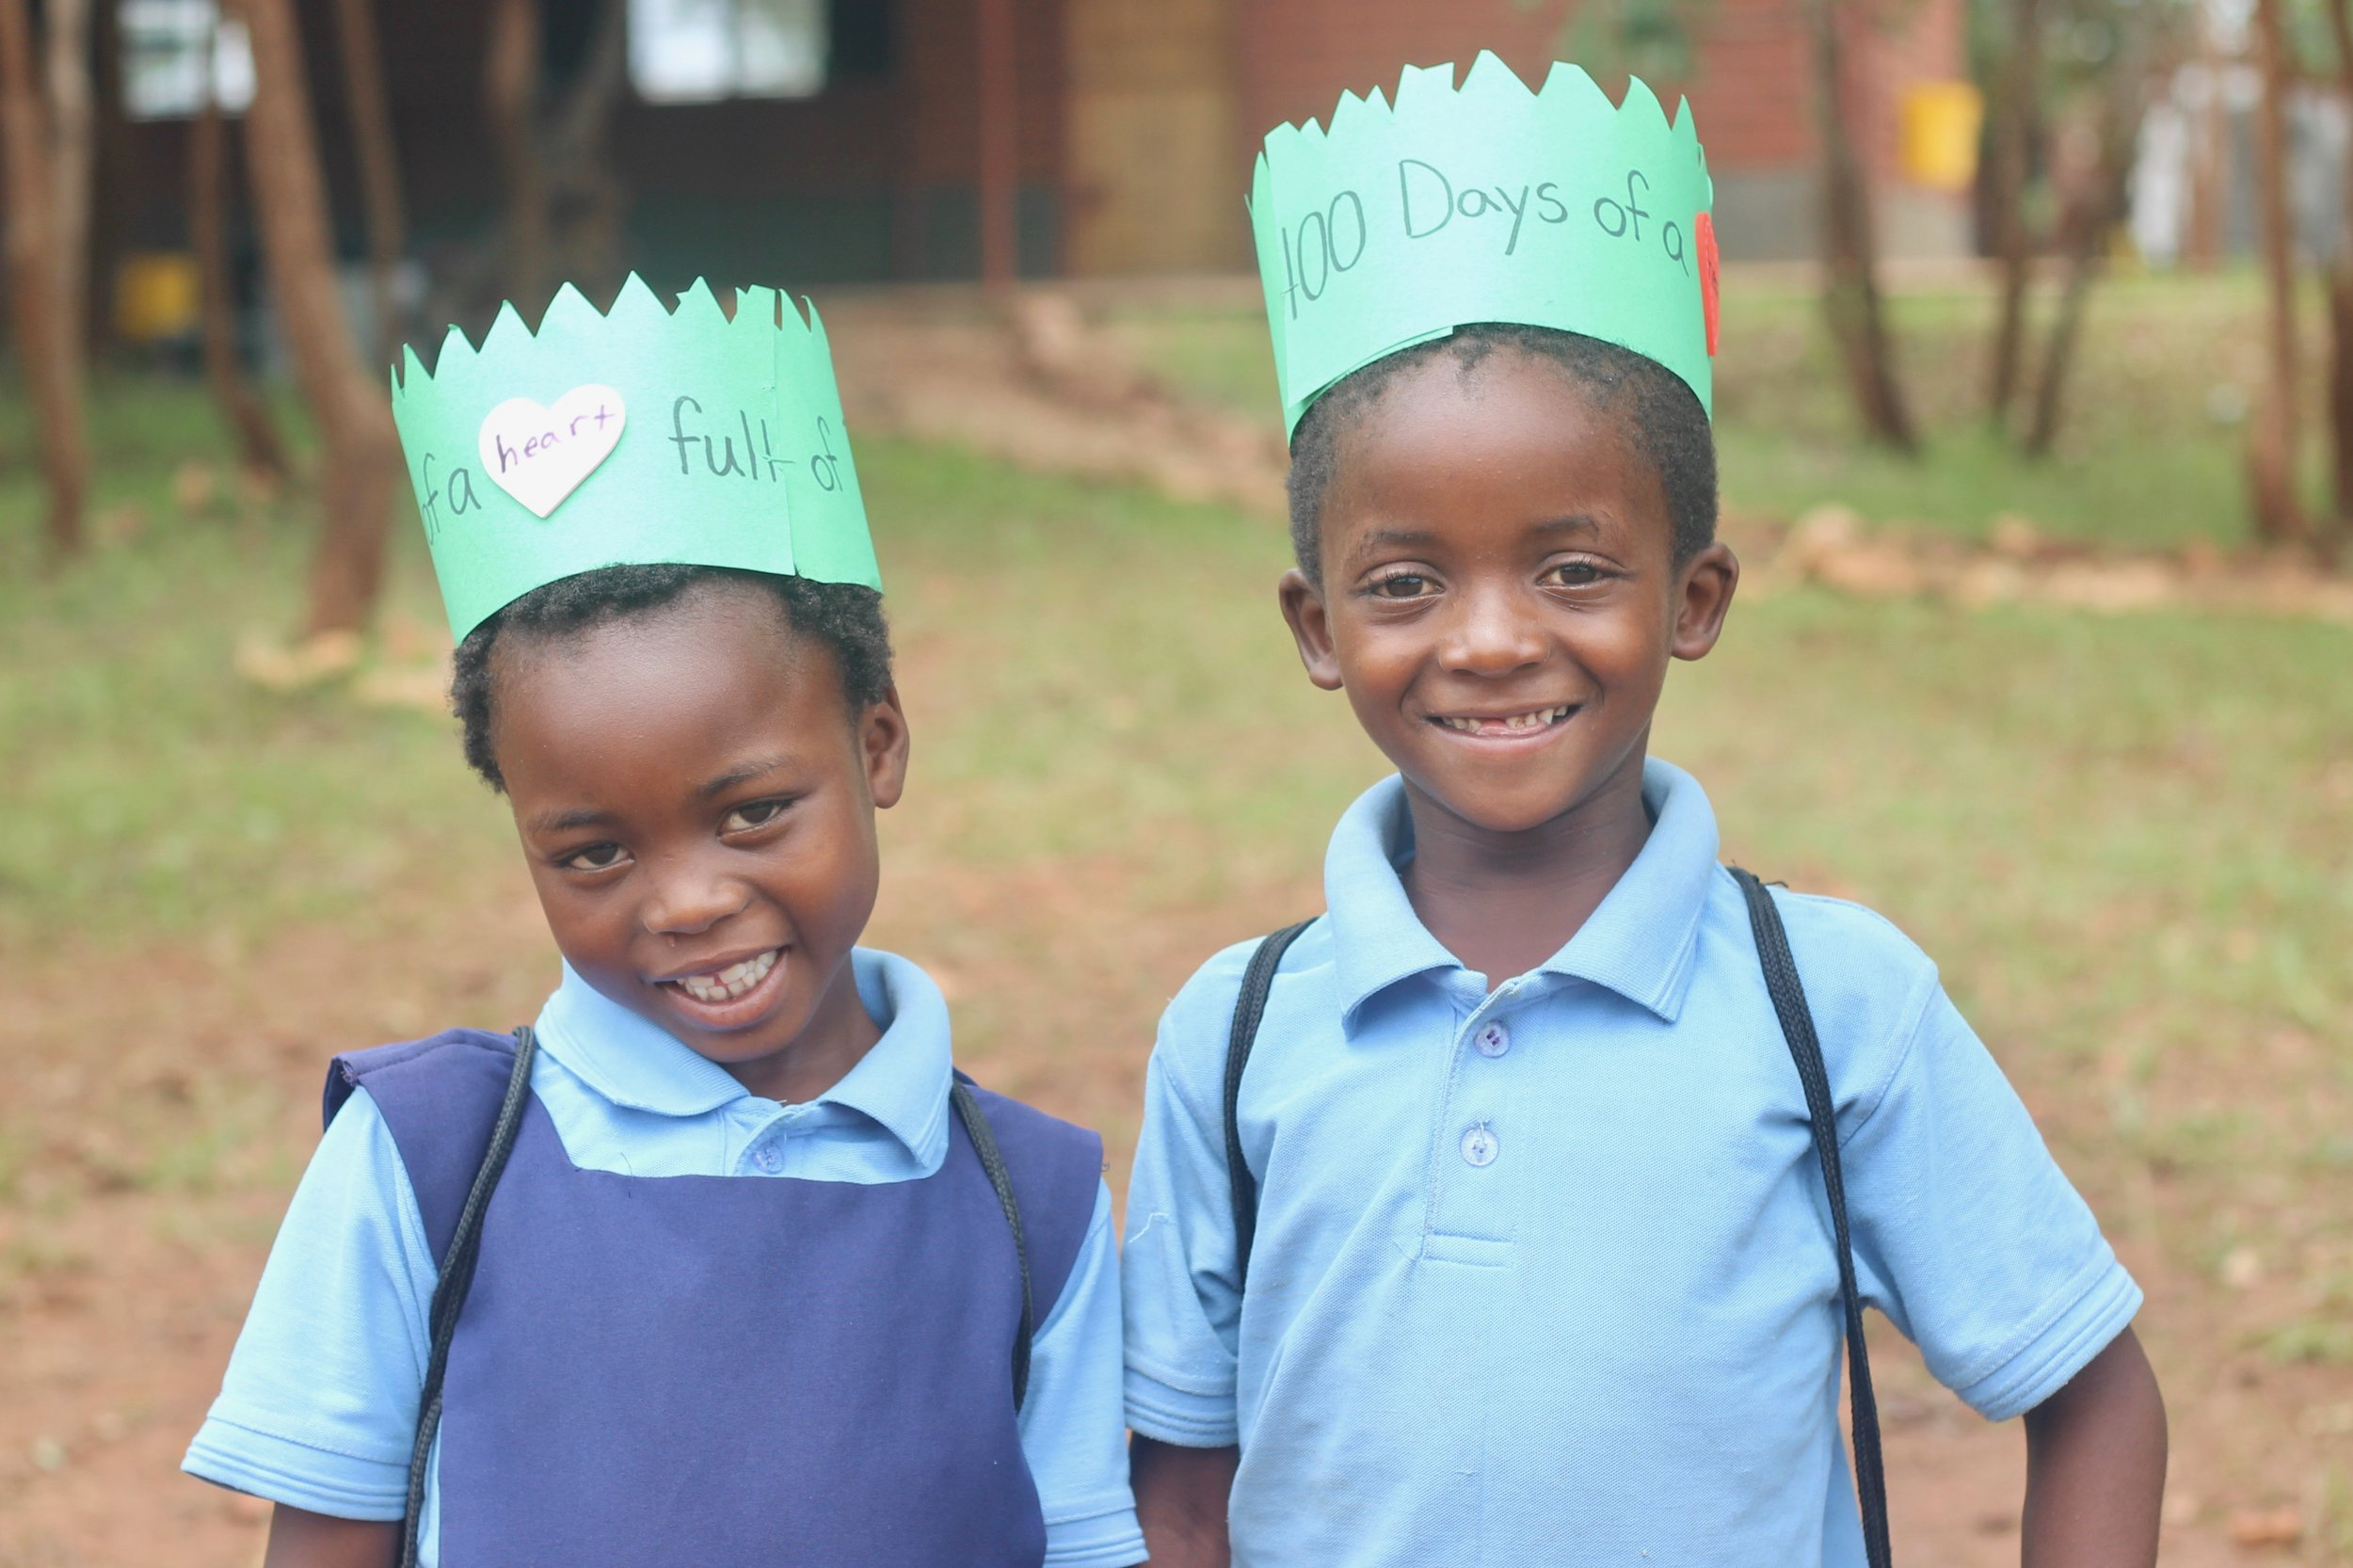 Some classes made 100s day crowns to show their excitement.